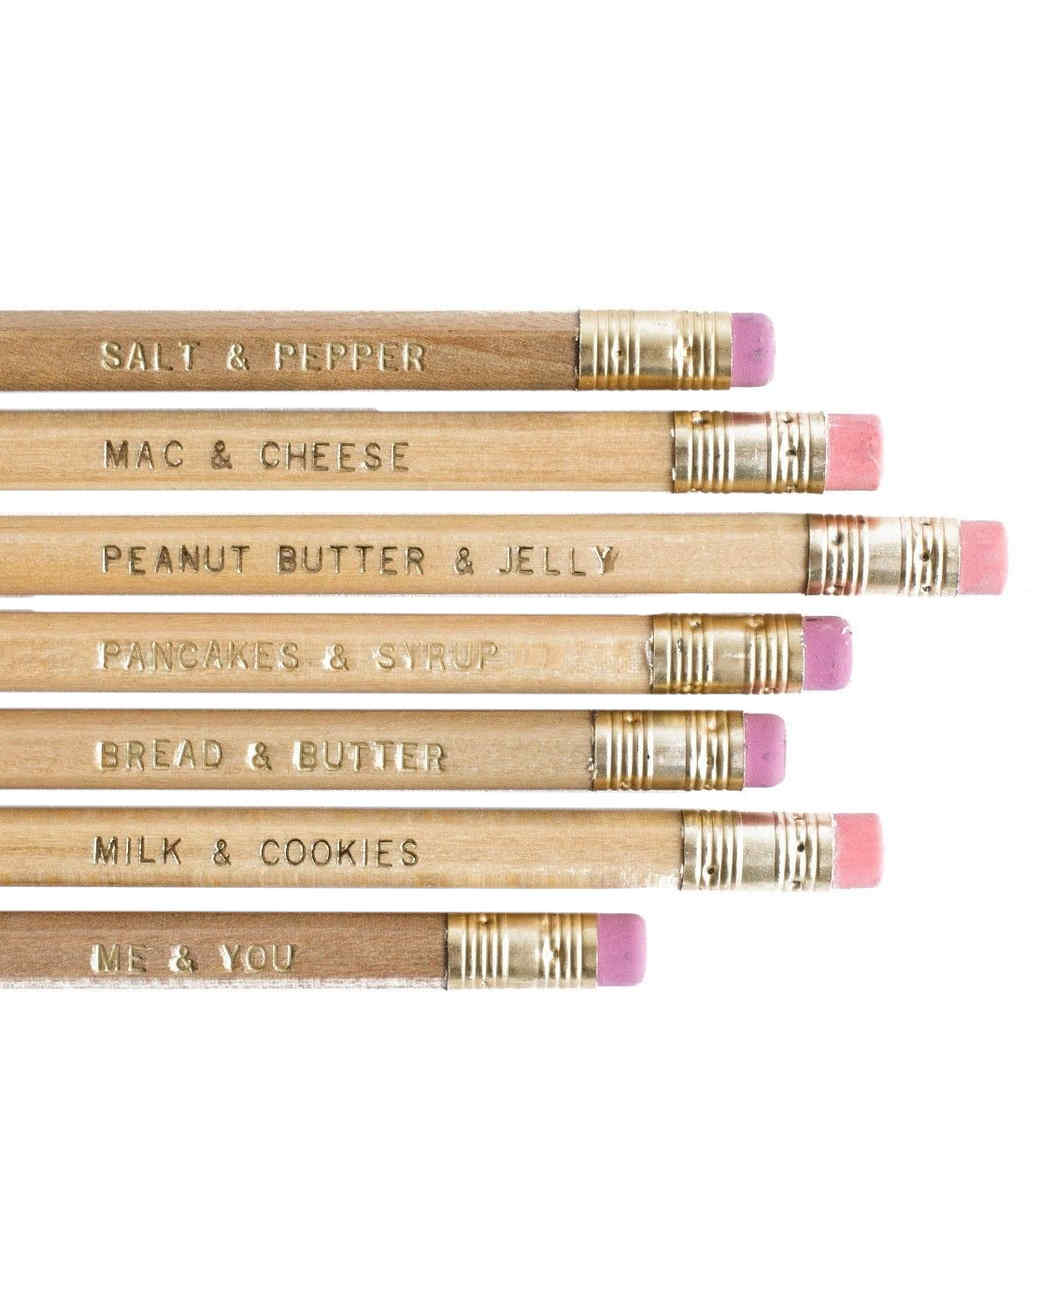 me-and-you-pencils-1014.jpg